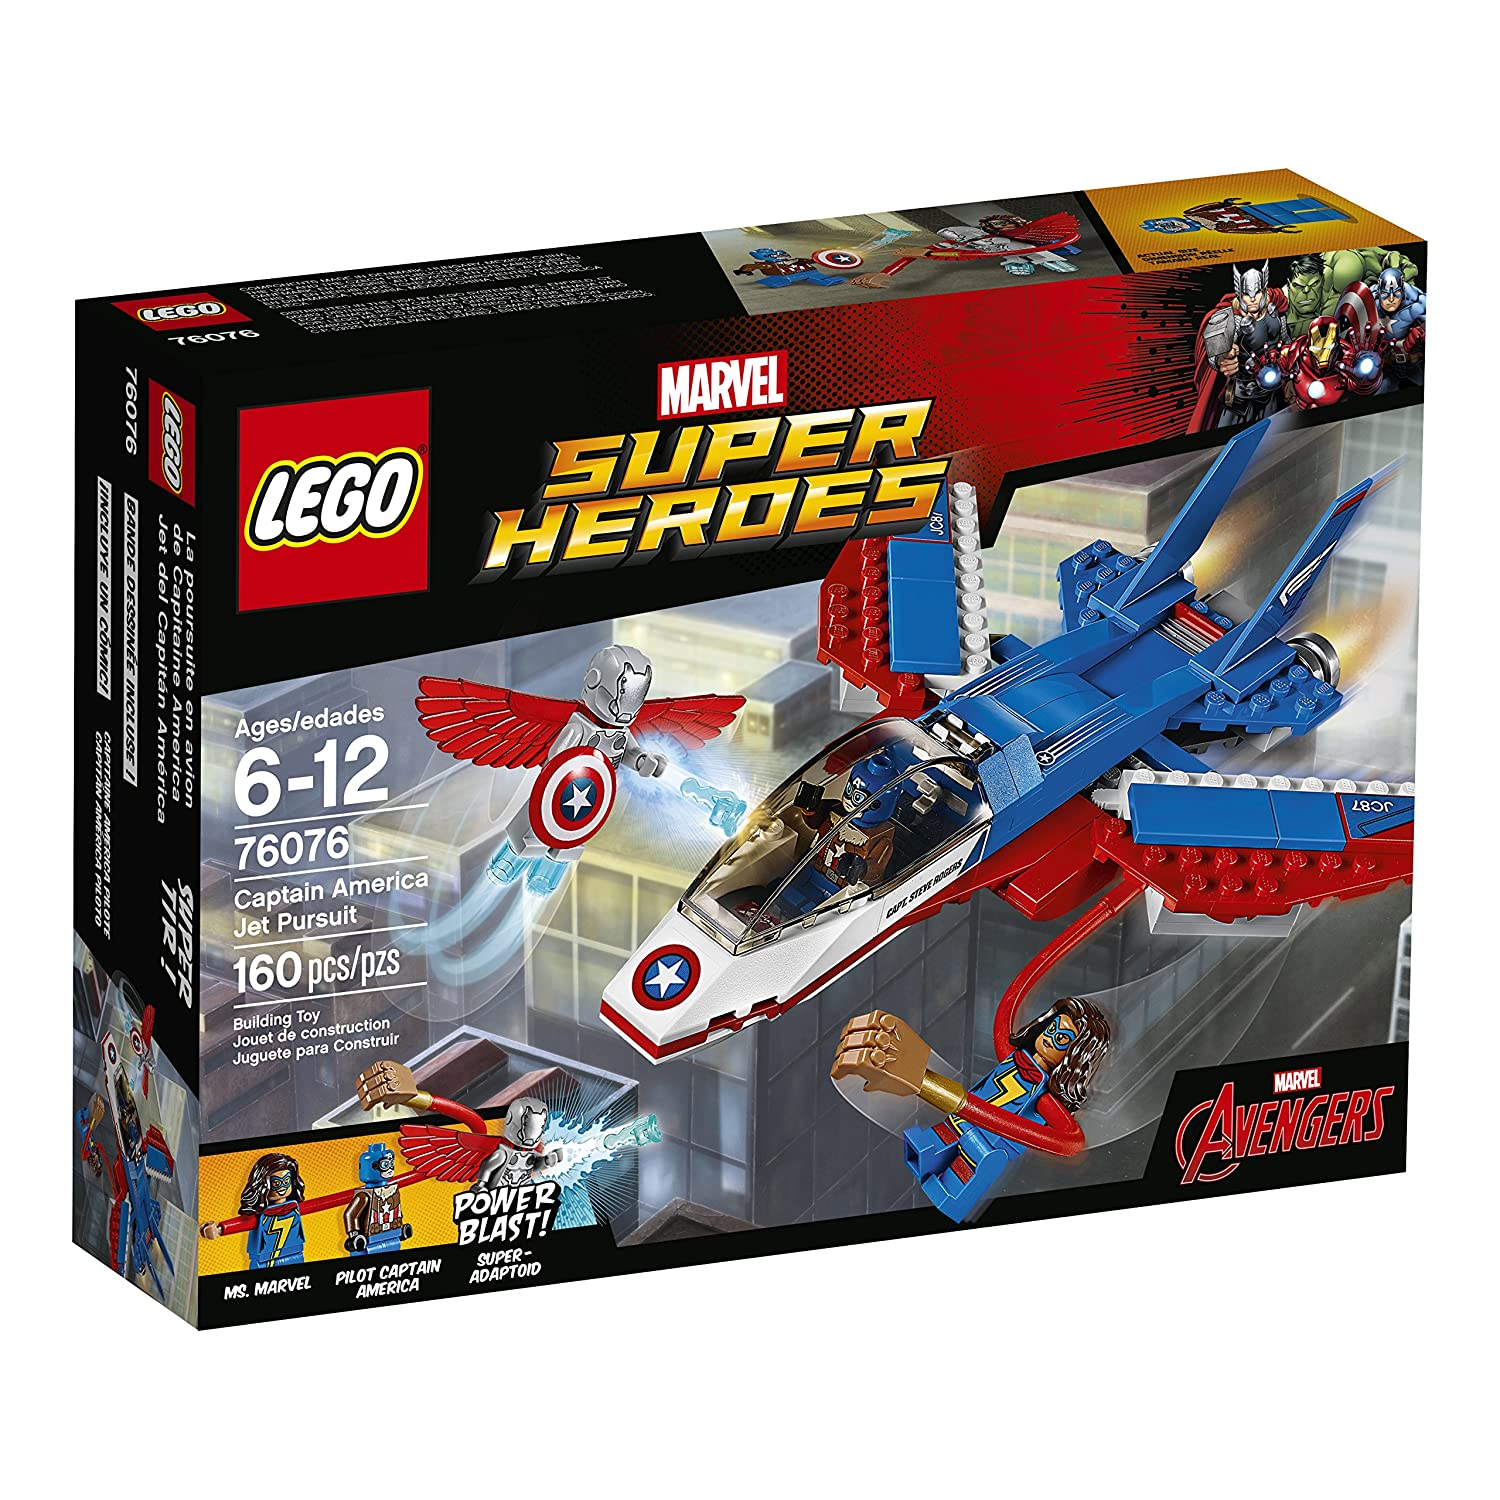 Top 9 Best LEGO Captain America Sets Reviews in 2020 3